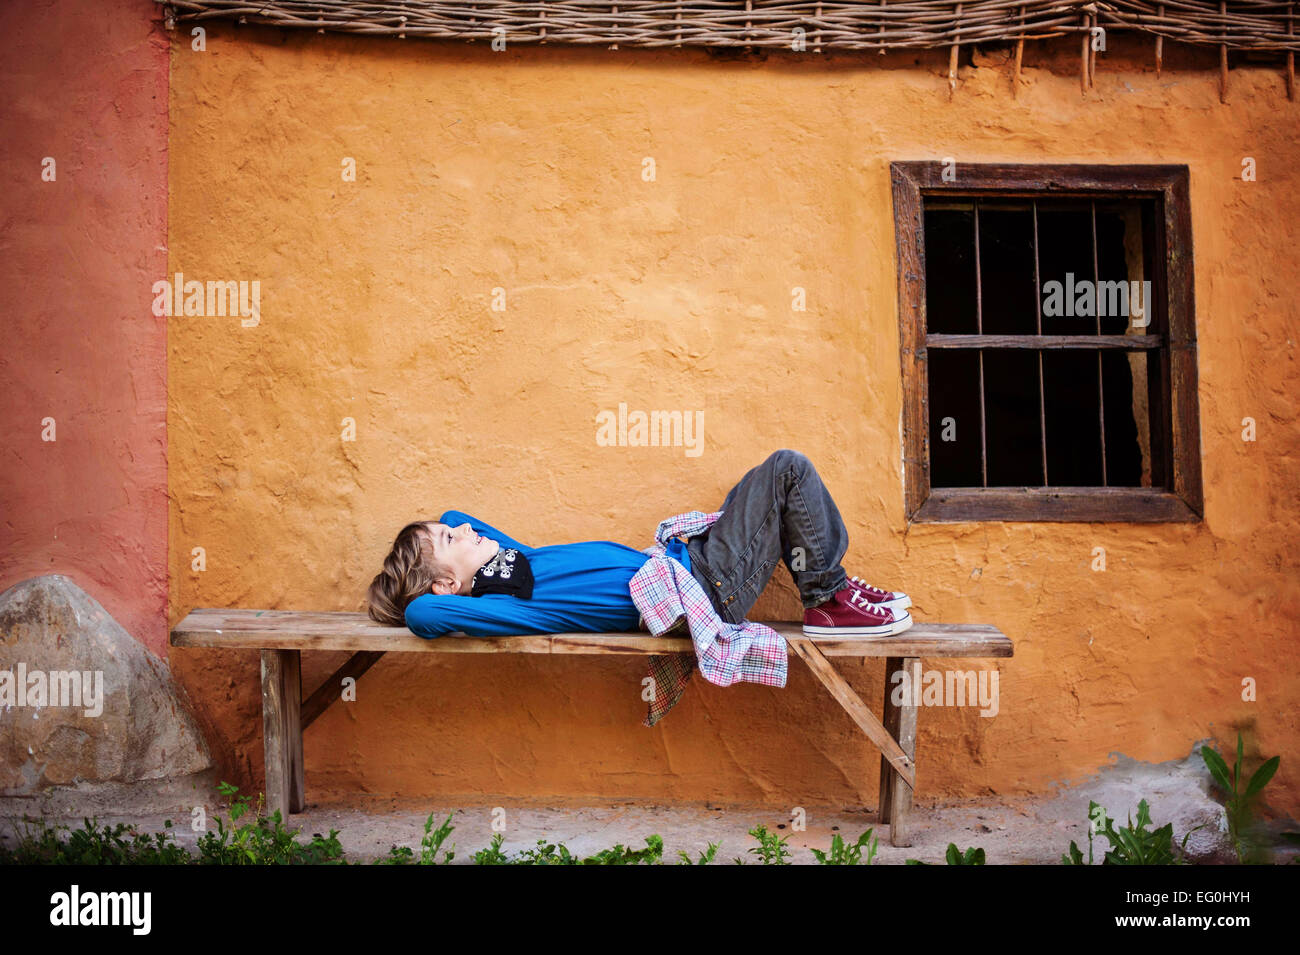 Boy (6-7) laying on bench - Stock Image